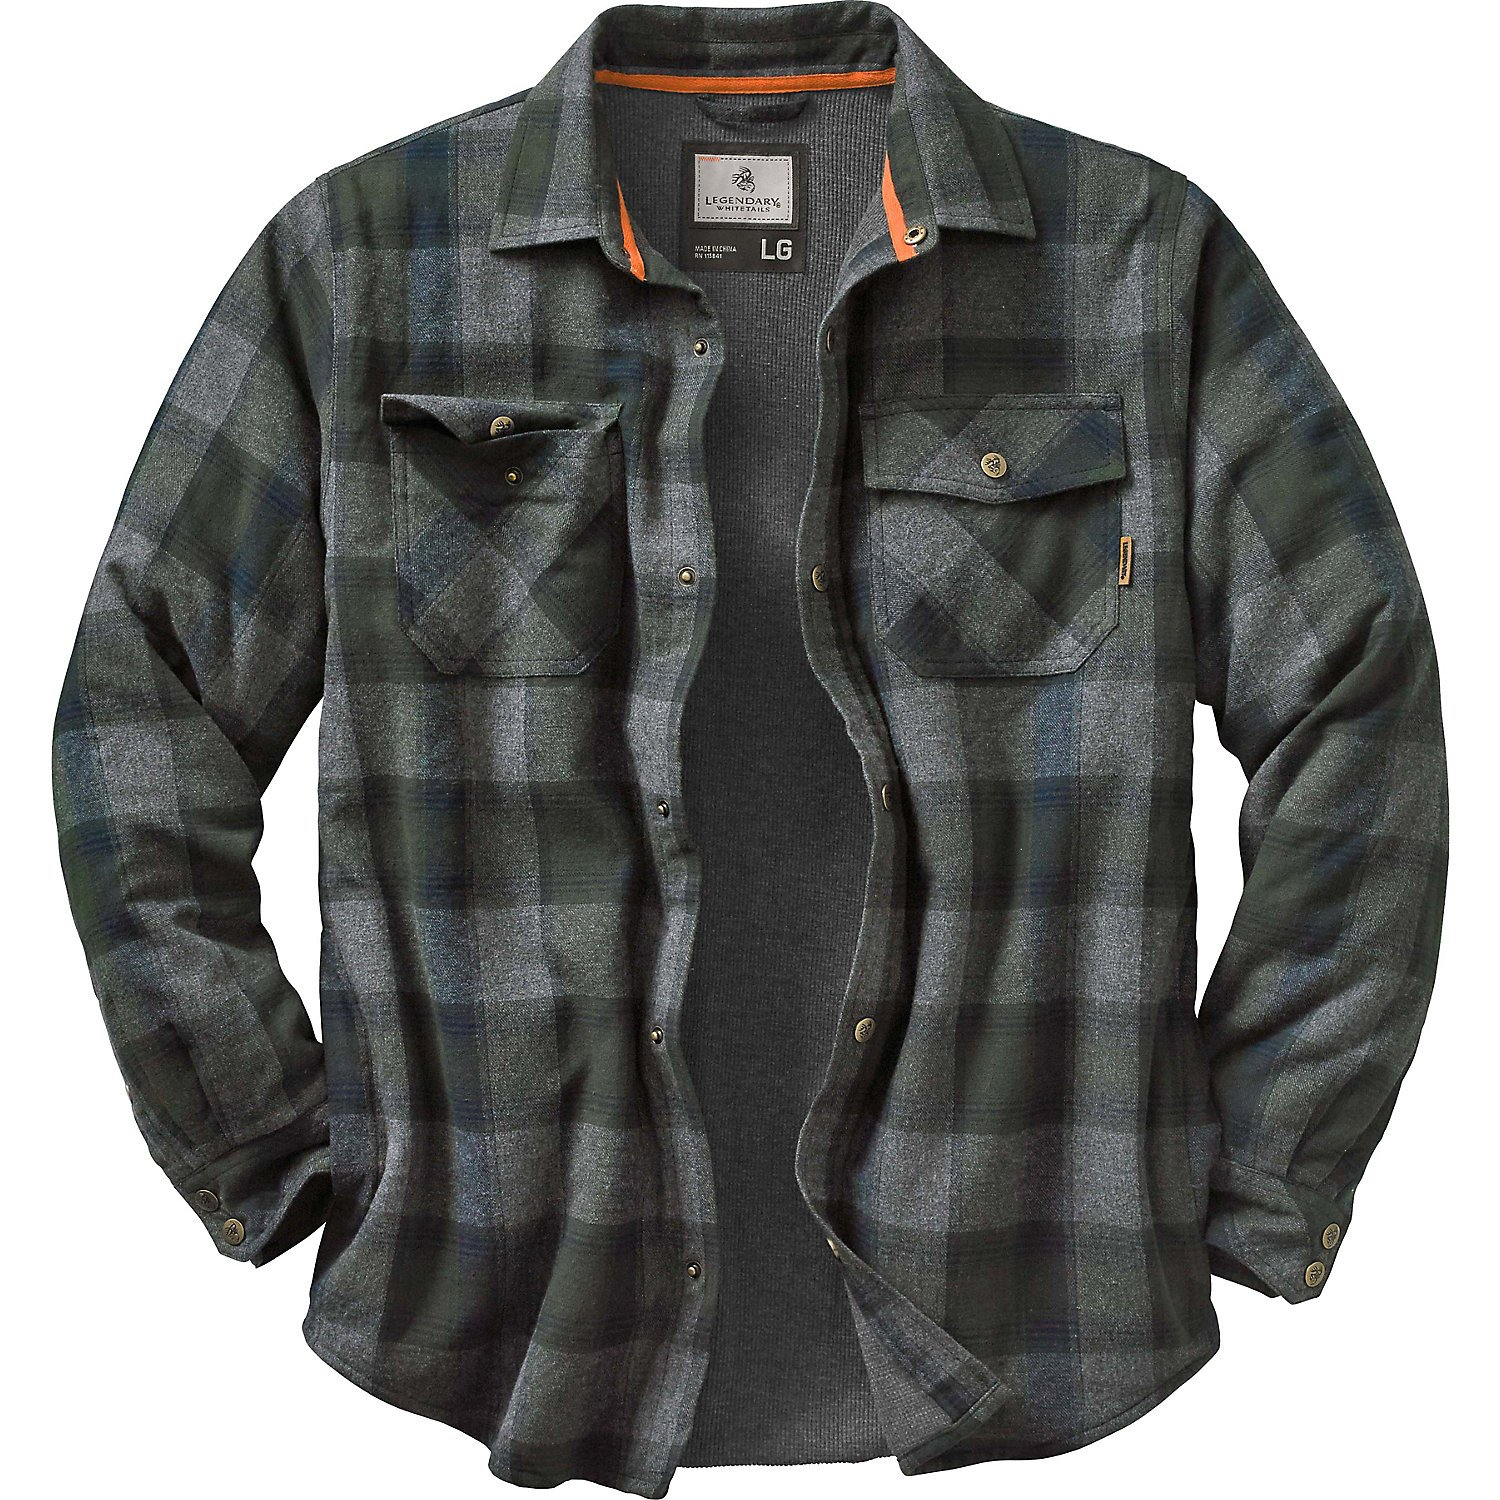 Legendary Whitetails Archer Shirt Jacket, Balsam Shadow Plaid, Large by Legendary Whitetails